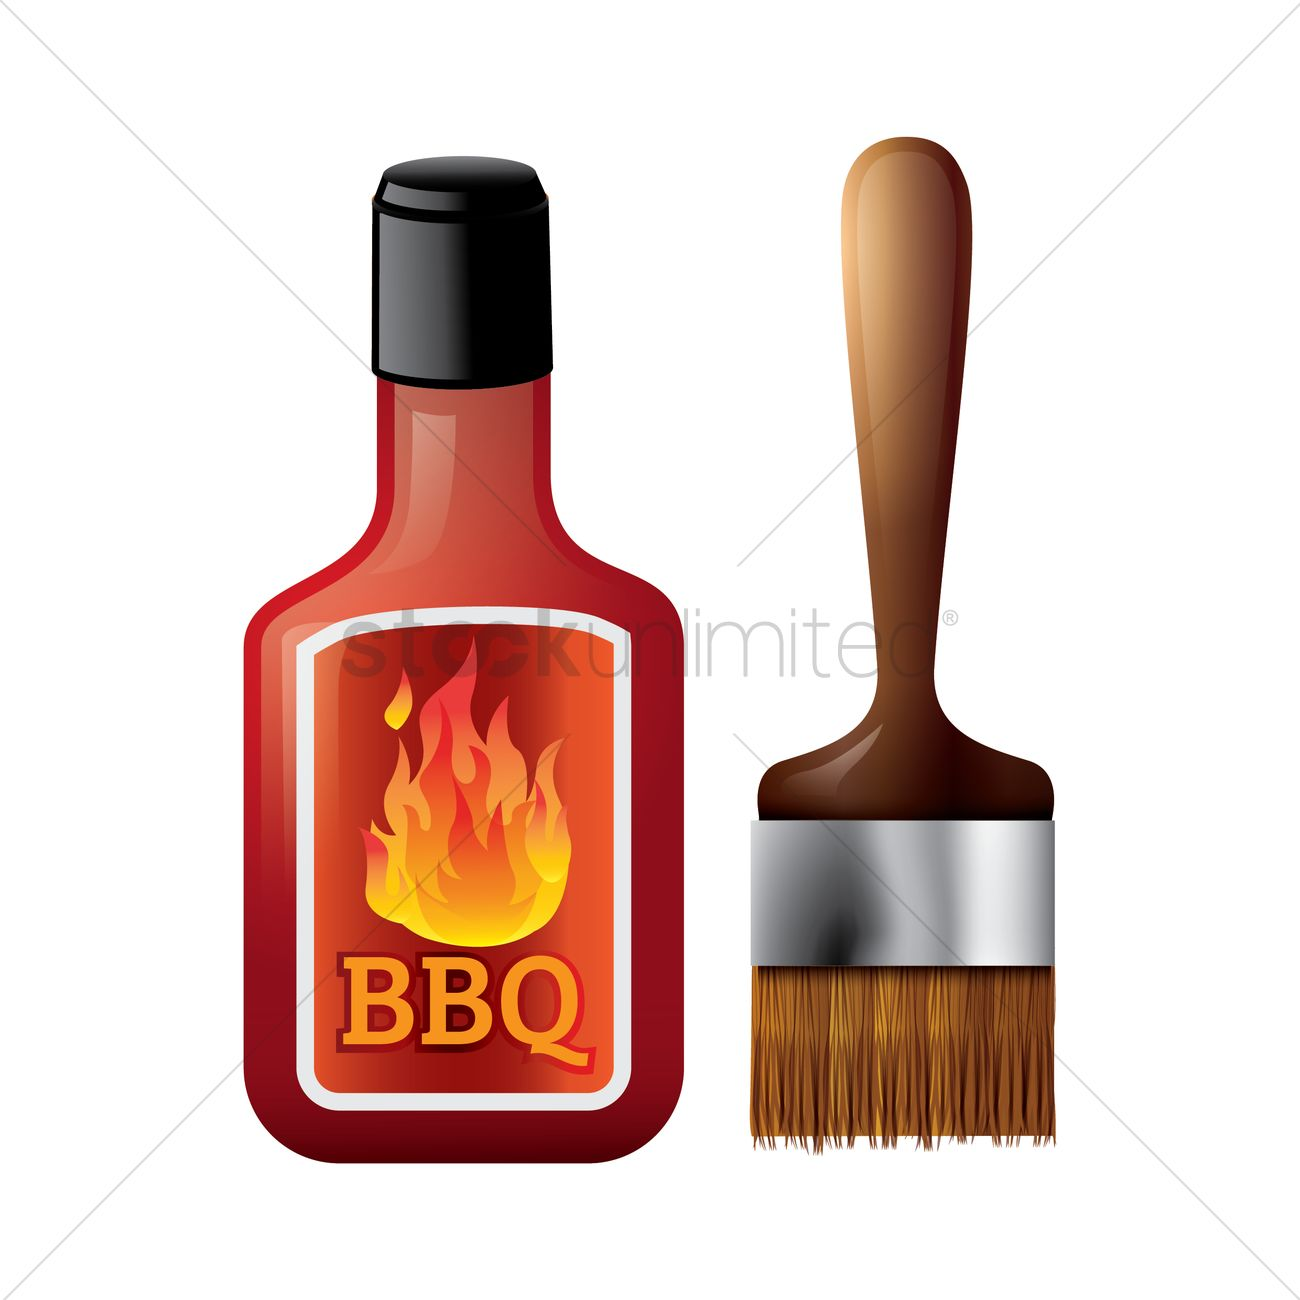 Bbq sauce bottle with brush Vector Image.